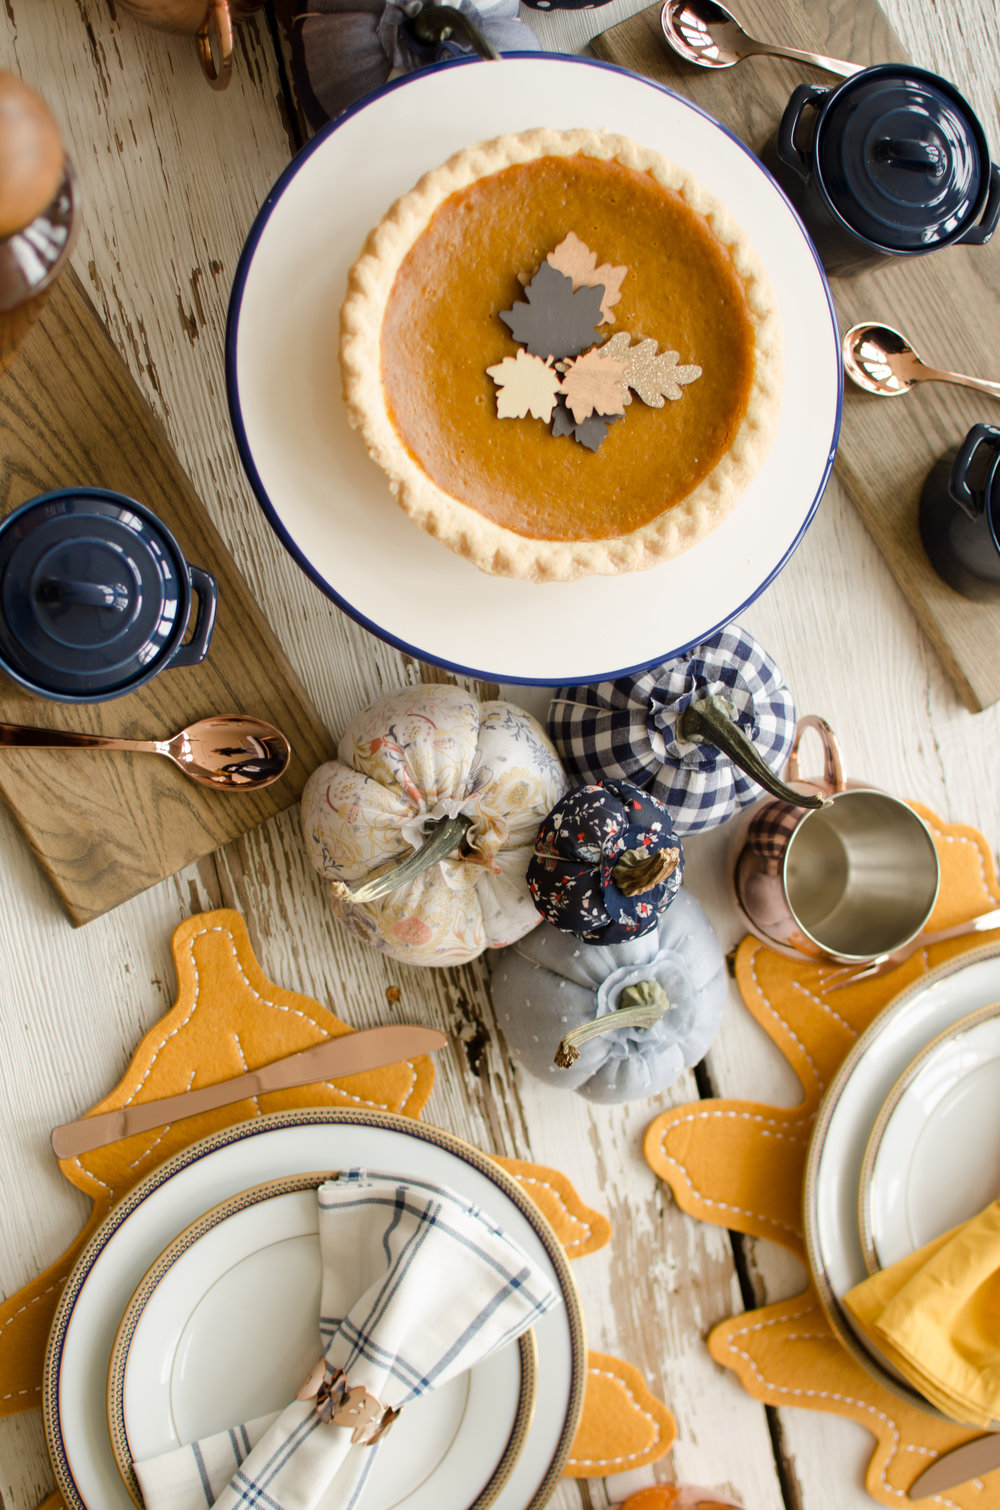 This Thanksgiving table is both shabby chic and so elegant with the copper and blue colors. Plus there's fabric pumpkins and fabric leaf shaped placemats. See more Thanksgiving Party Ideas from party planner, Mint Event Design in Austin, Texas on www.minteventdesign.com #thanksgiving #thanksgivingdecorations #tablescape #thanksgivingtable #pumpkins #tablesettings #fallparty